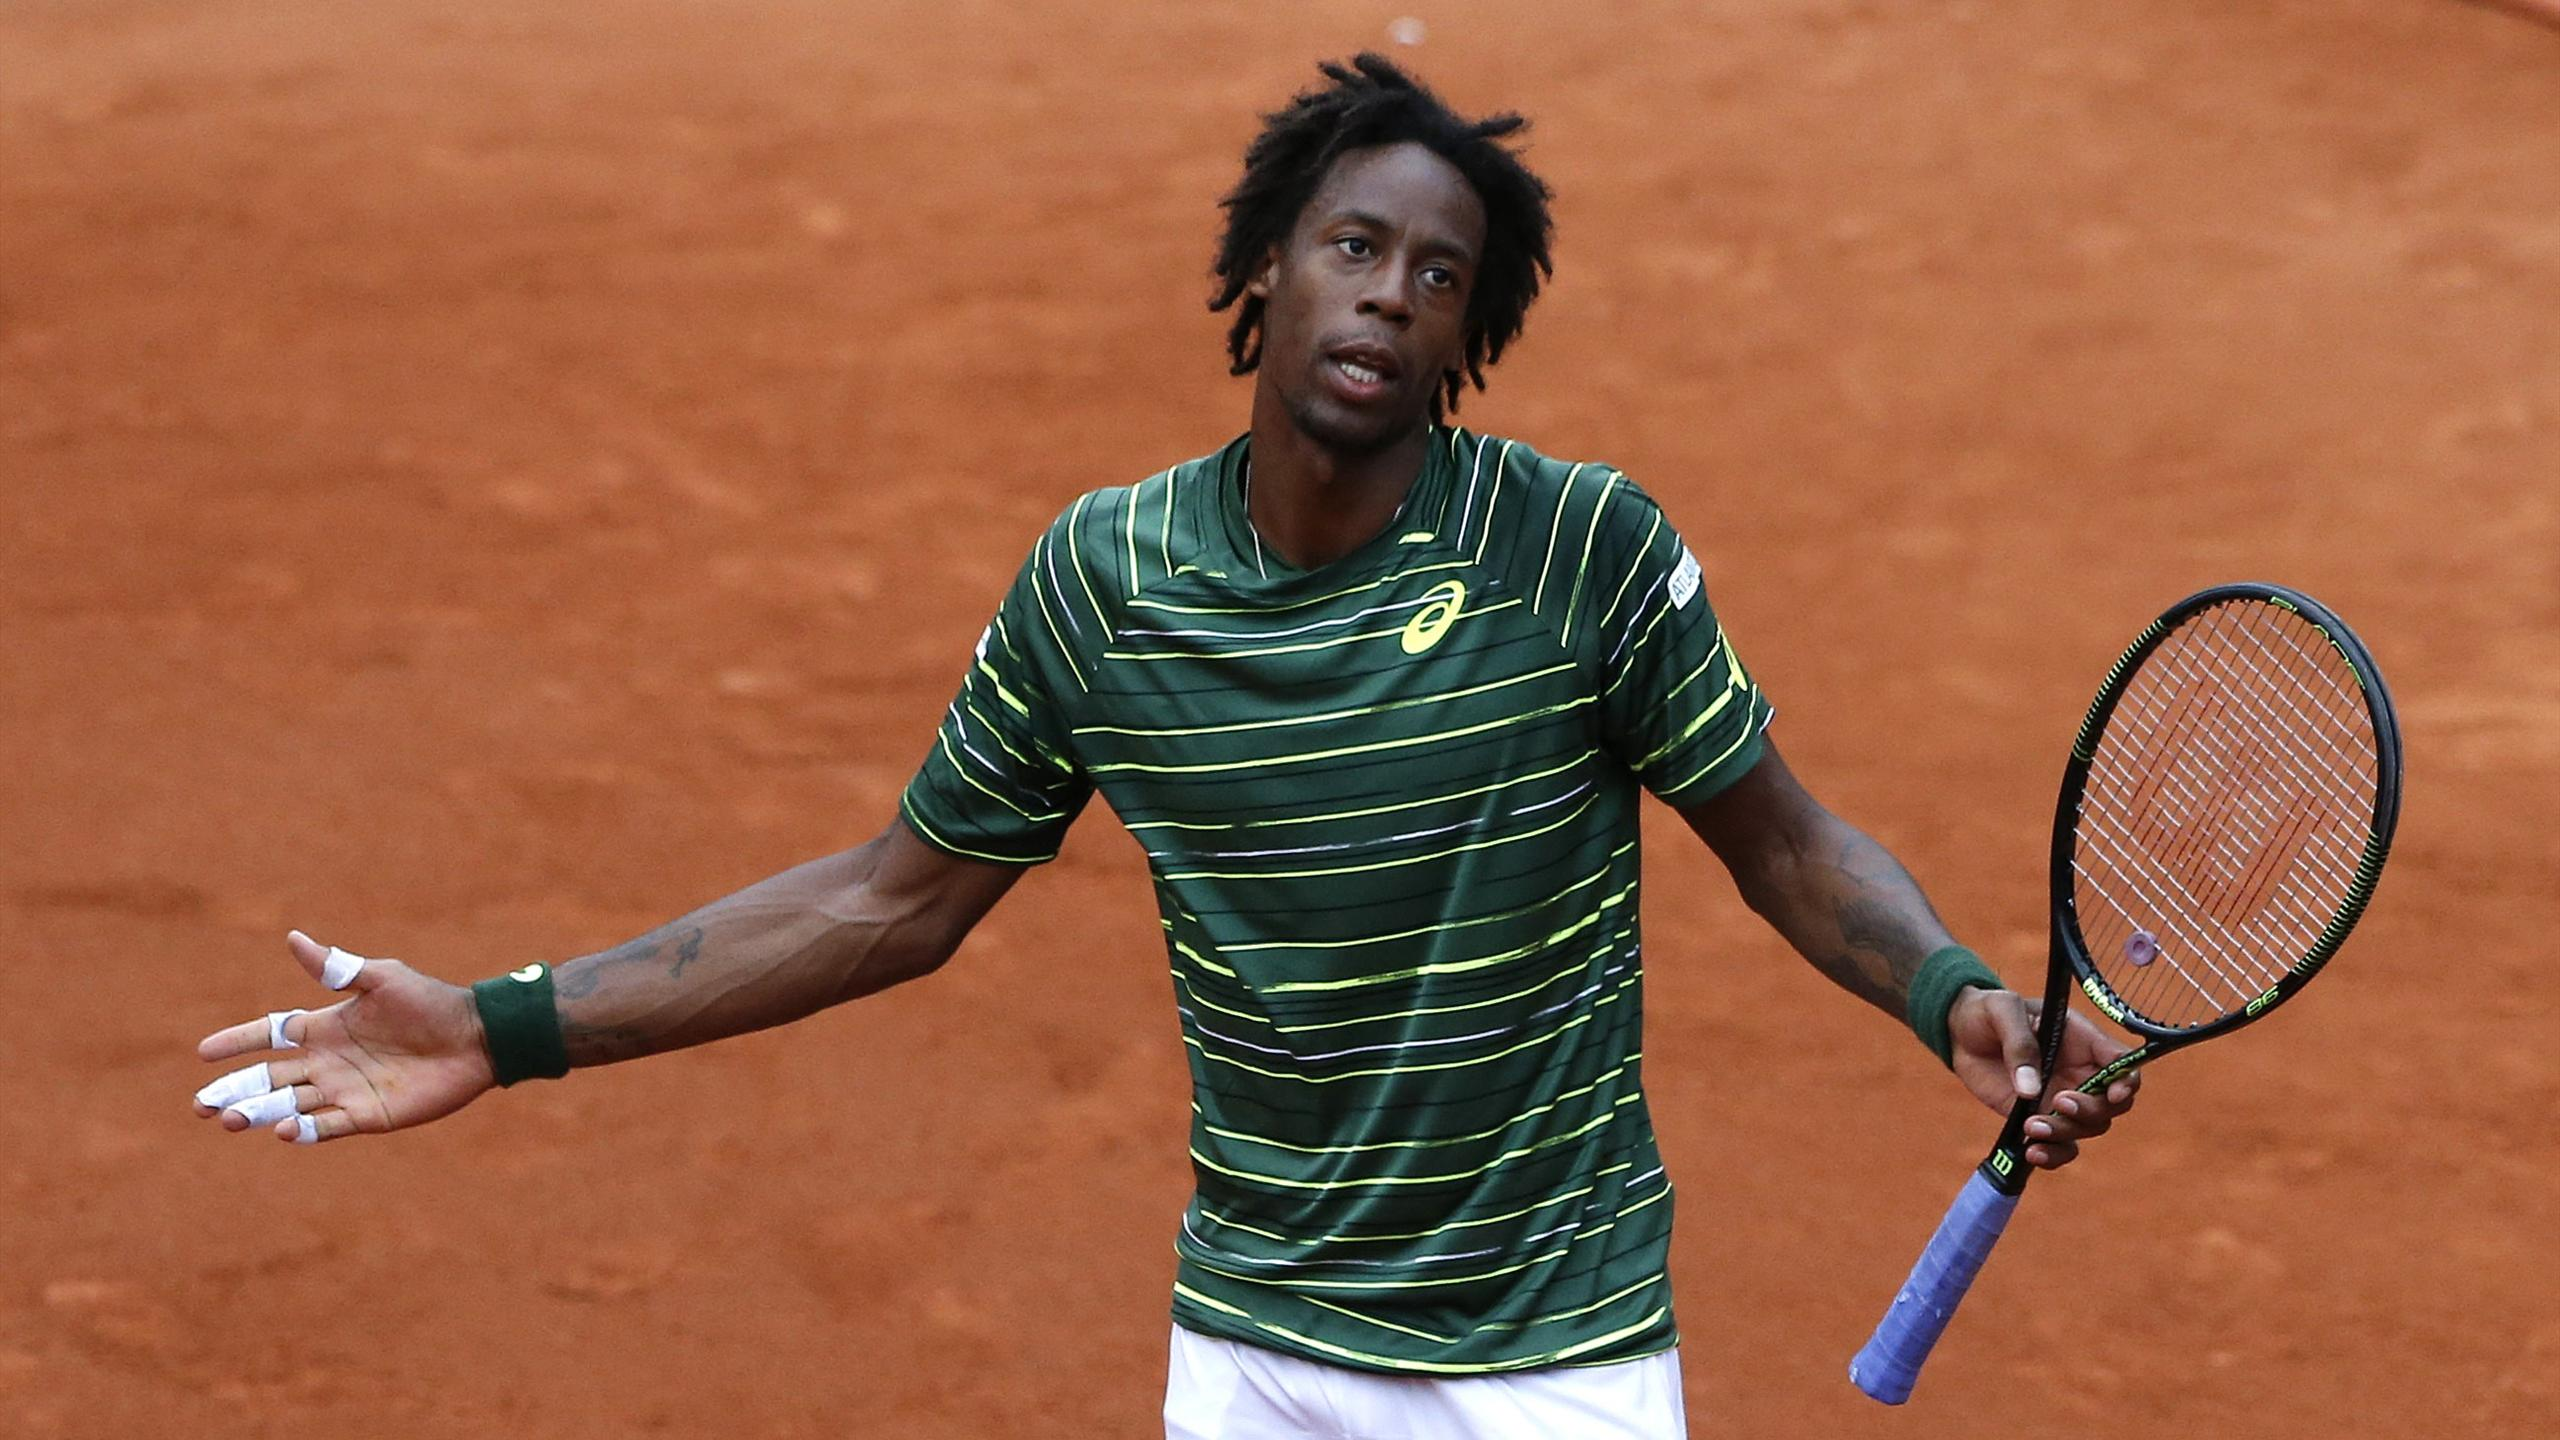 Gael Monfils of France playing at Roland Garros in 2015